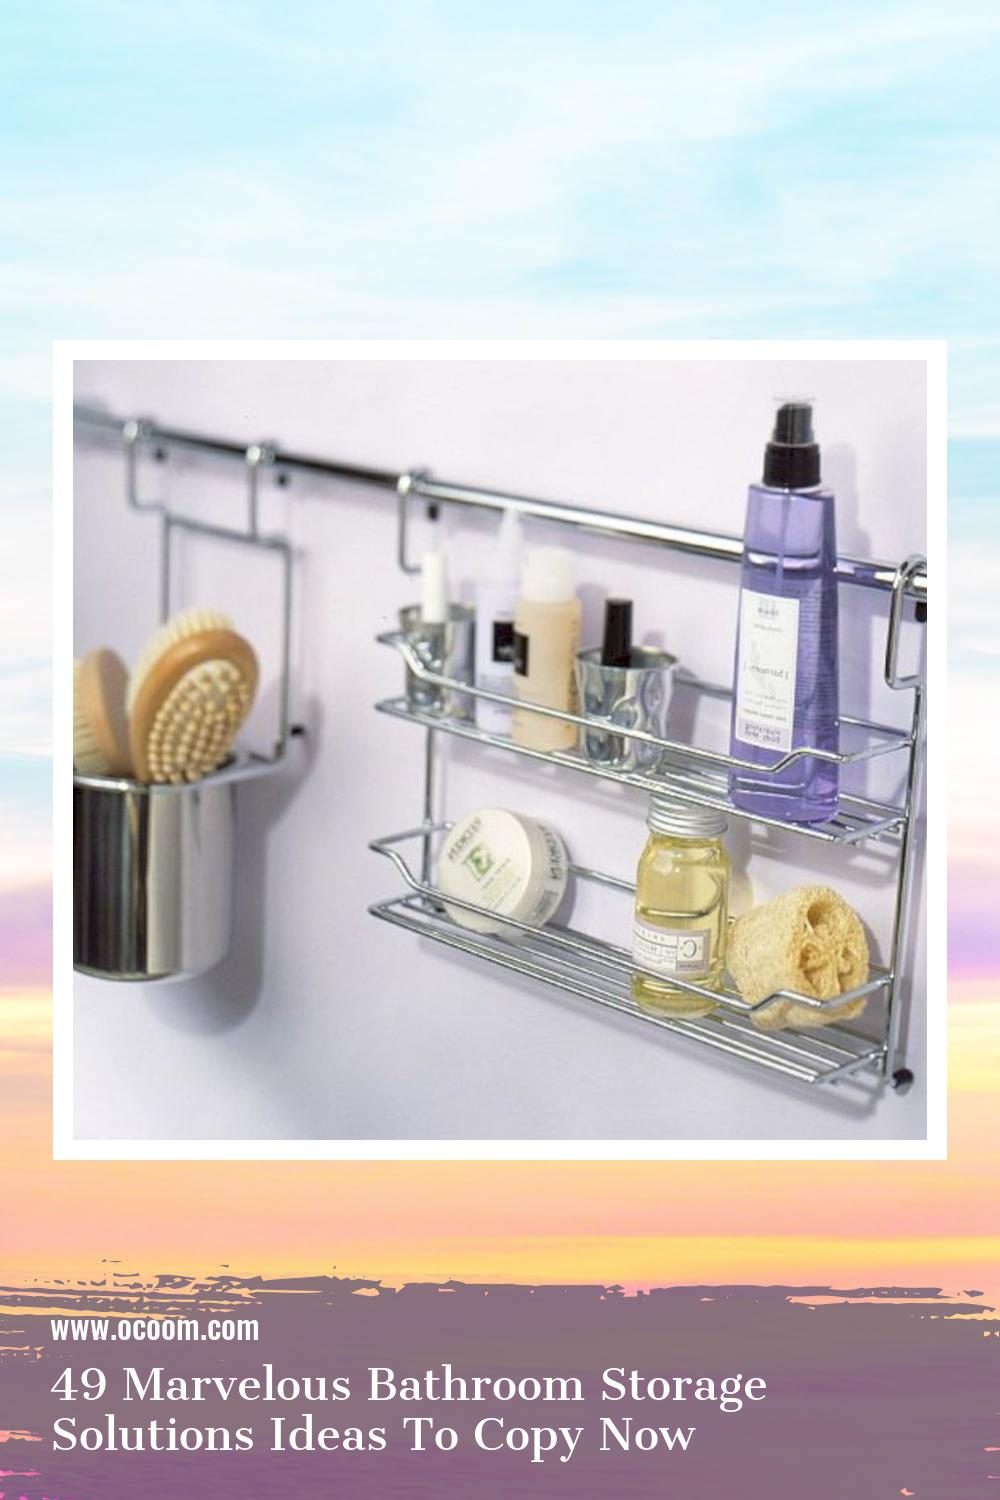 49 Marvelous Bathroom Storage Solutions Ideas To Copy Now 38